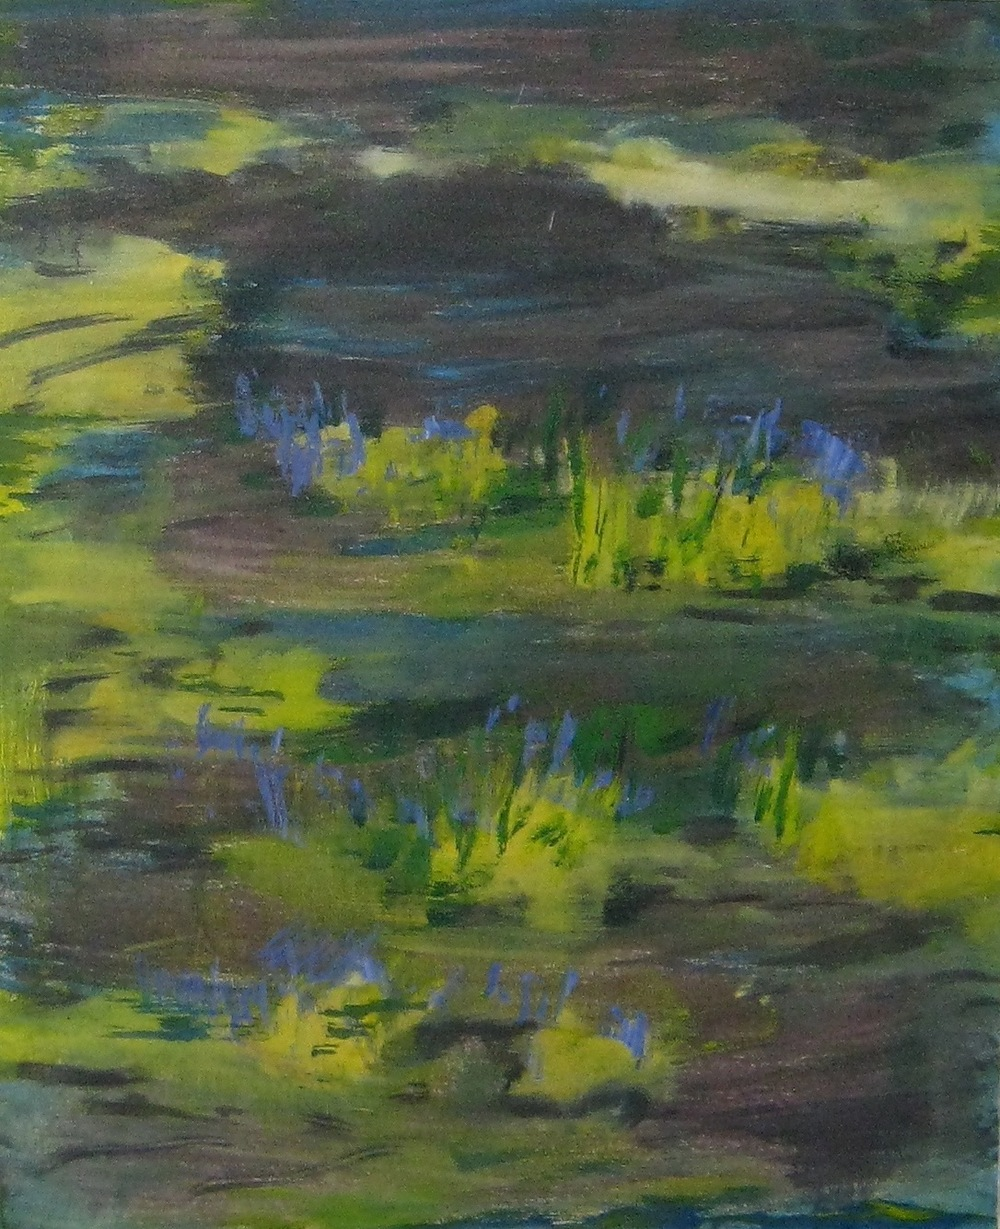 Imagined Landscape, 2011, SOLD